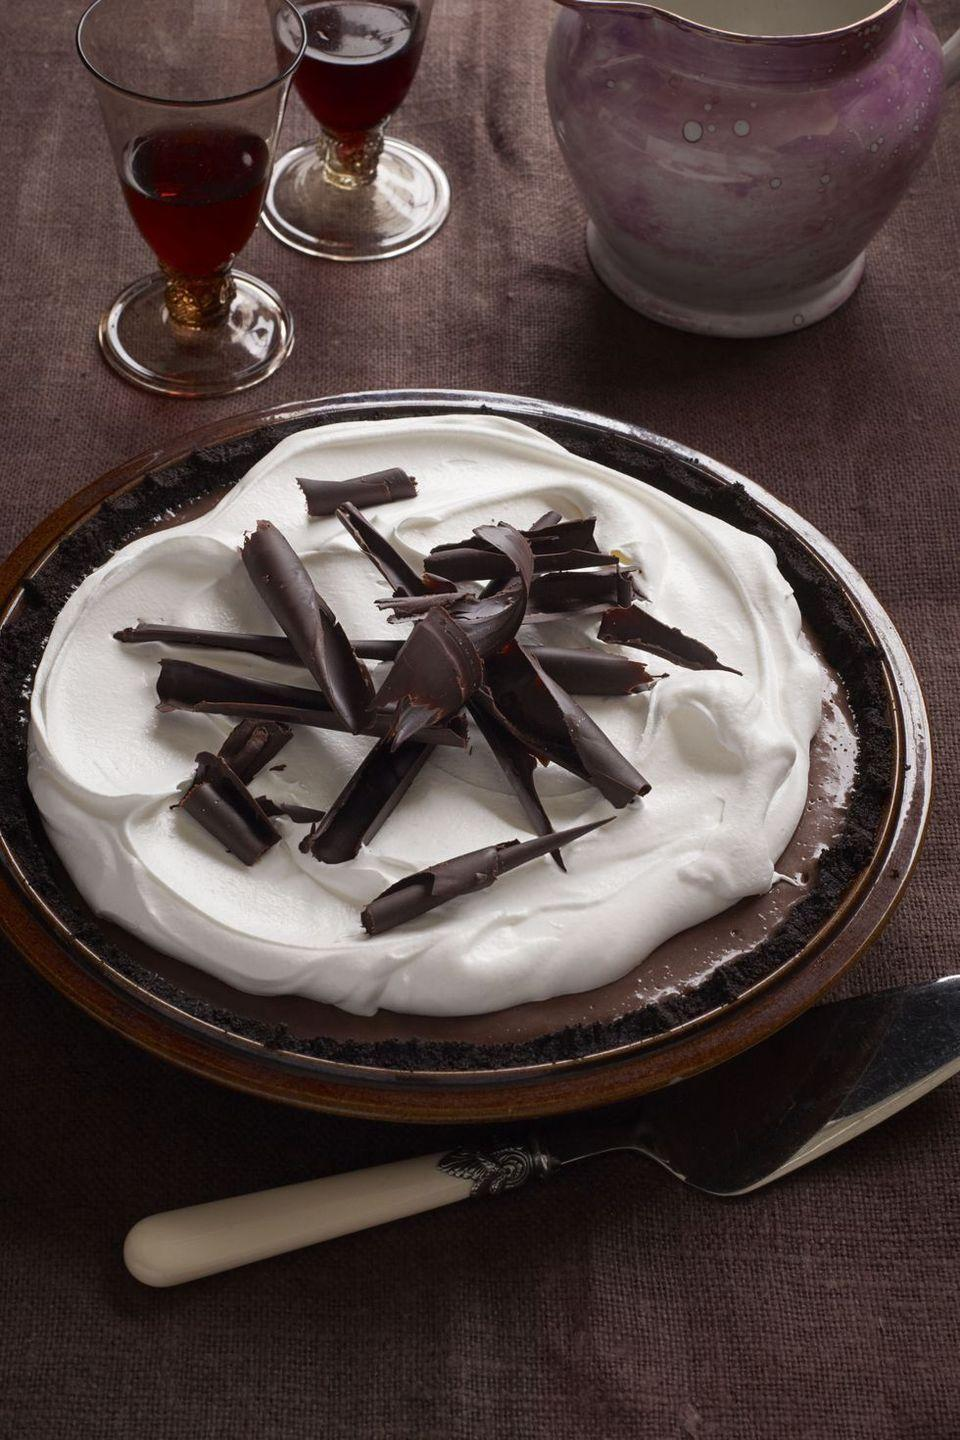 """<p>Chocolate cookie crust and chocolate custard — what more could a chocolate-lover want?</p><p><em><a href=""""https://www.goodhousekeeping.com/food-recipes/a13984/black-bottom-chocolate-cream-pie-recipe-ghk0212/"""" rel=""""nofollow noopener"""" target=""""_blank"""" data-ylk=""""slk:Get the recipe for Black-Bottom Chocolate Cream Pie »"""" class=""""link rapid-noclick-resp"""">Get the recipe for Black-Bottom Chocolate Cream Pie »</a></em></p>"""